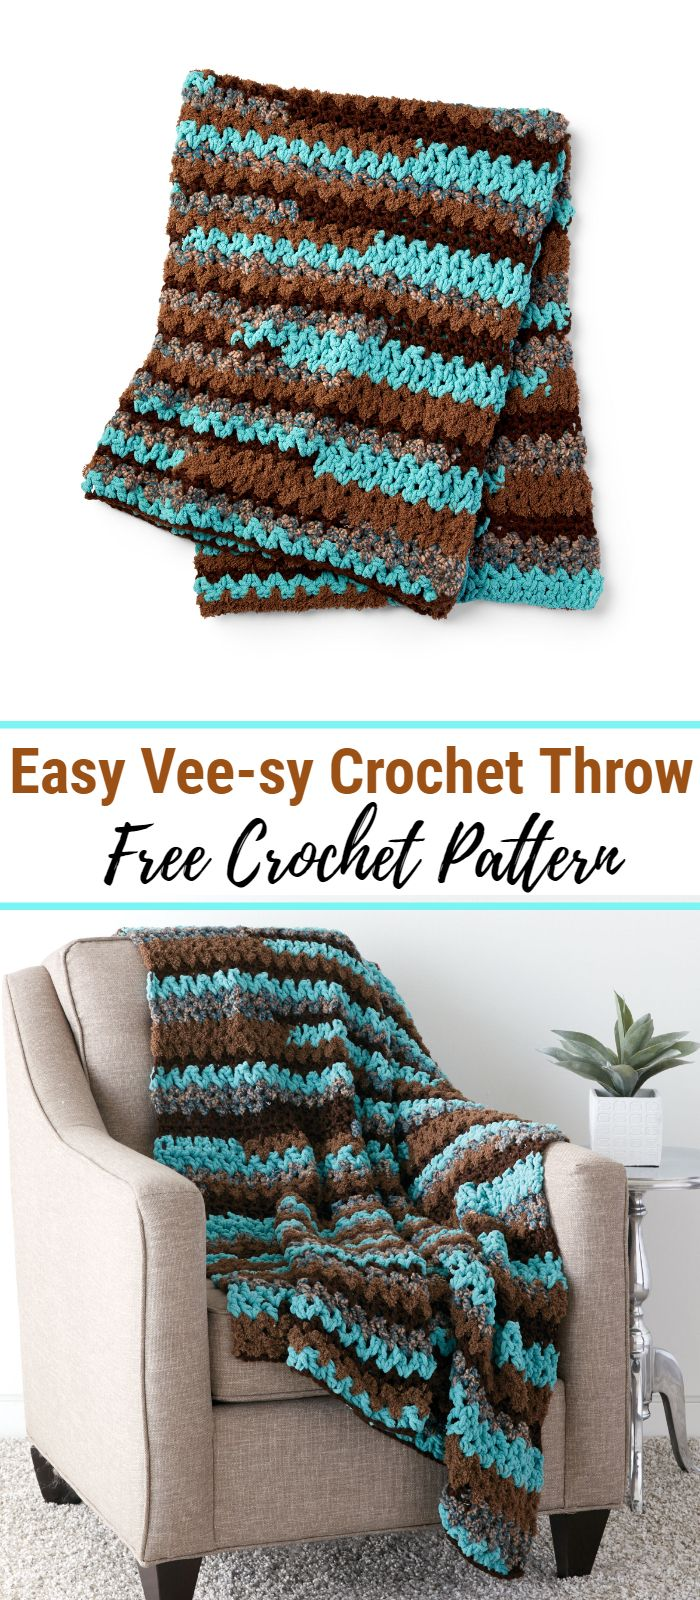 Easy Vee-sy Crochet Throw